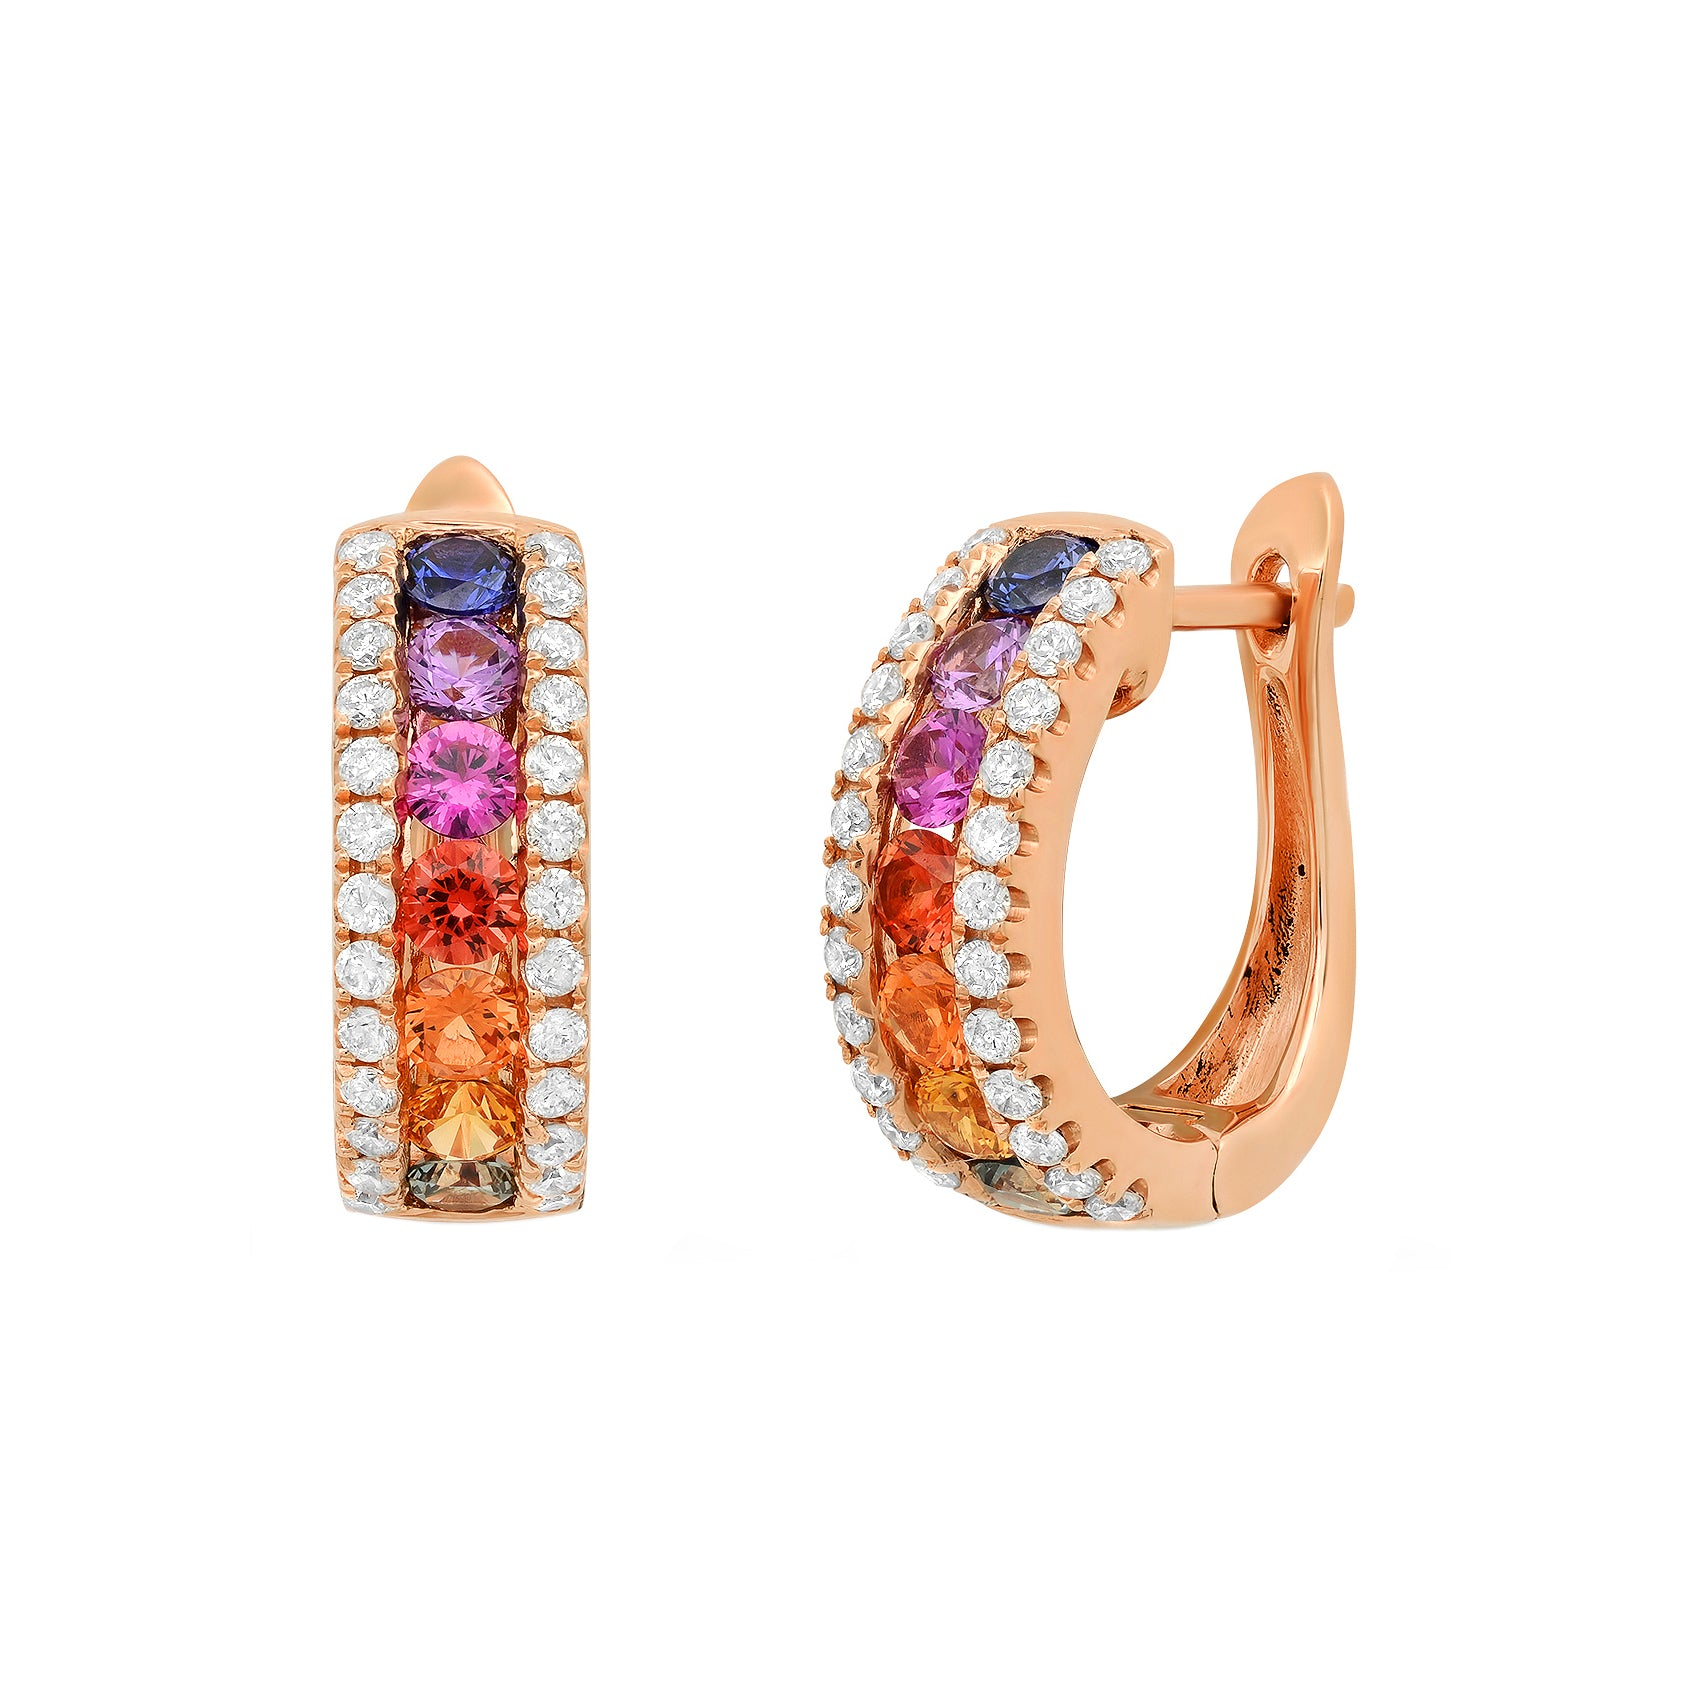 Multicolor Sapphire Hoops by Colette for Broken English Jewelry